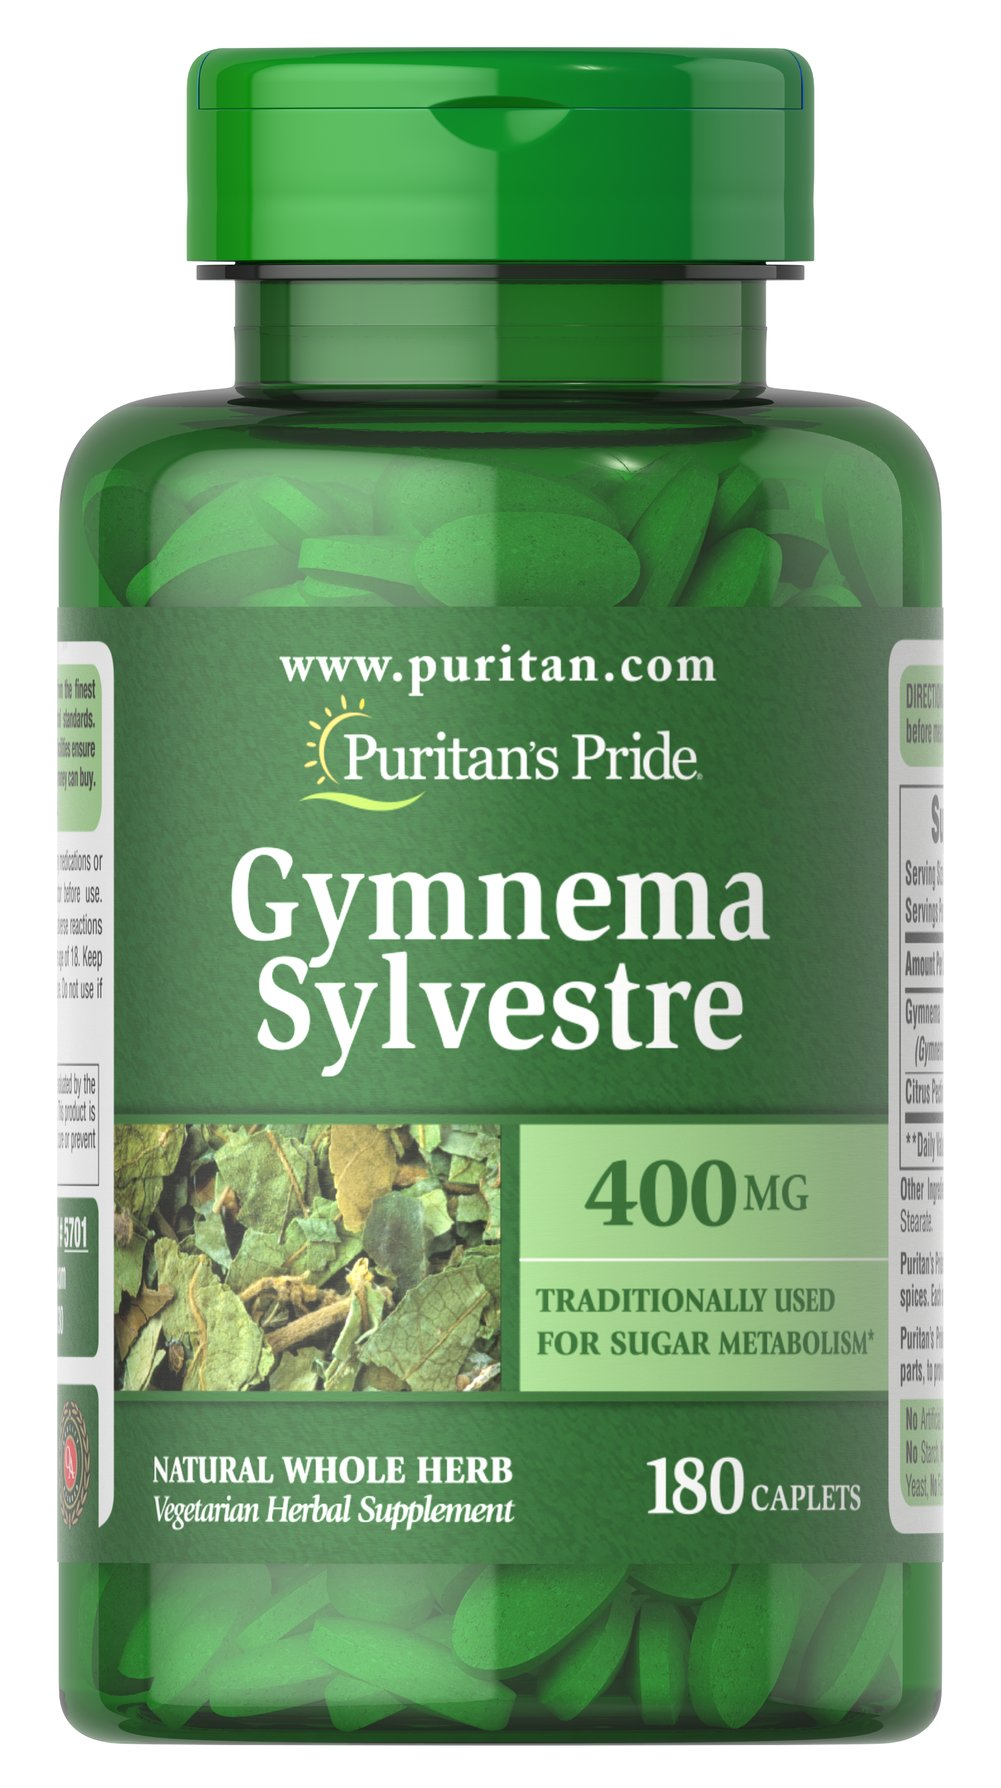 Gymnema Sylvestre 400 mg Thumbnail Alternate Bottle View